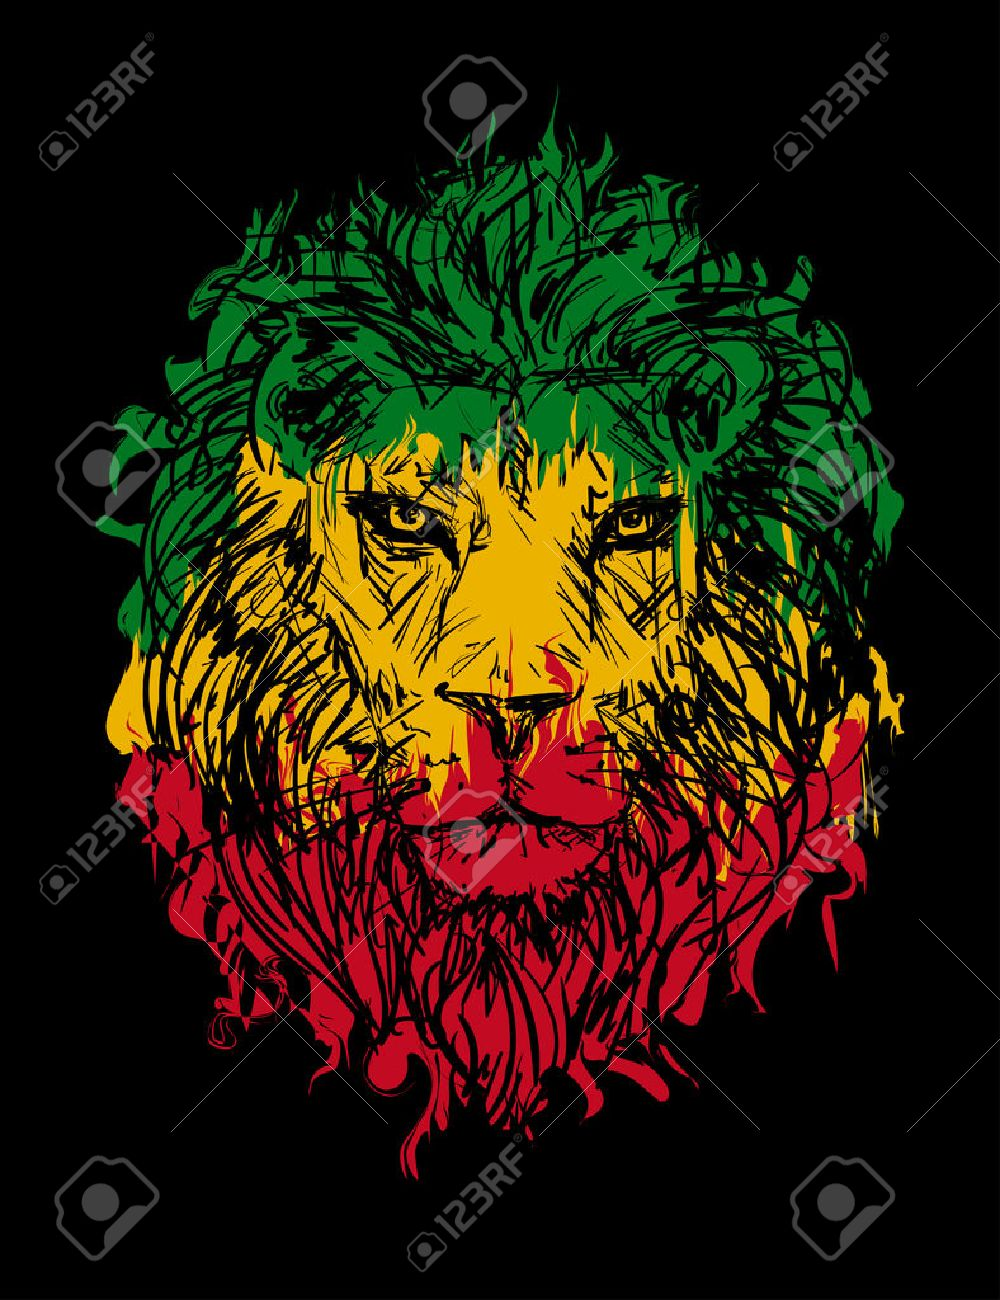 Rasta theme with lion head on black background vector illustration stock vector 54646466